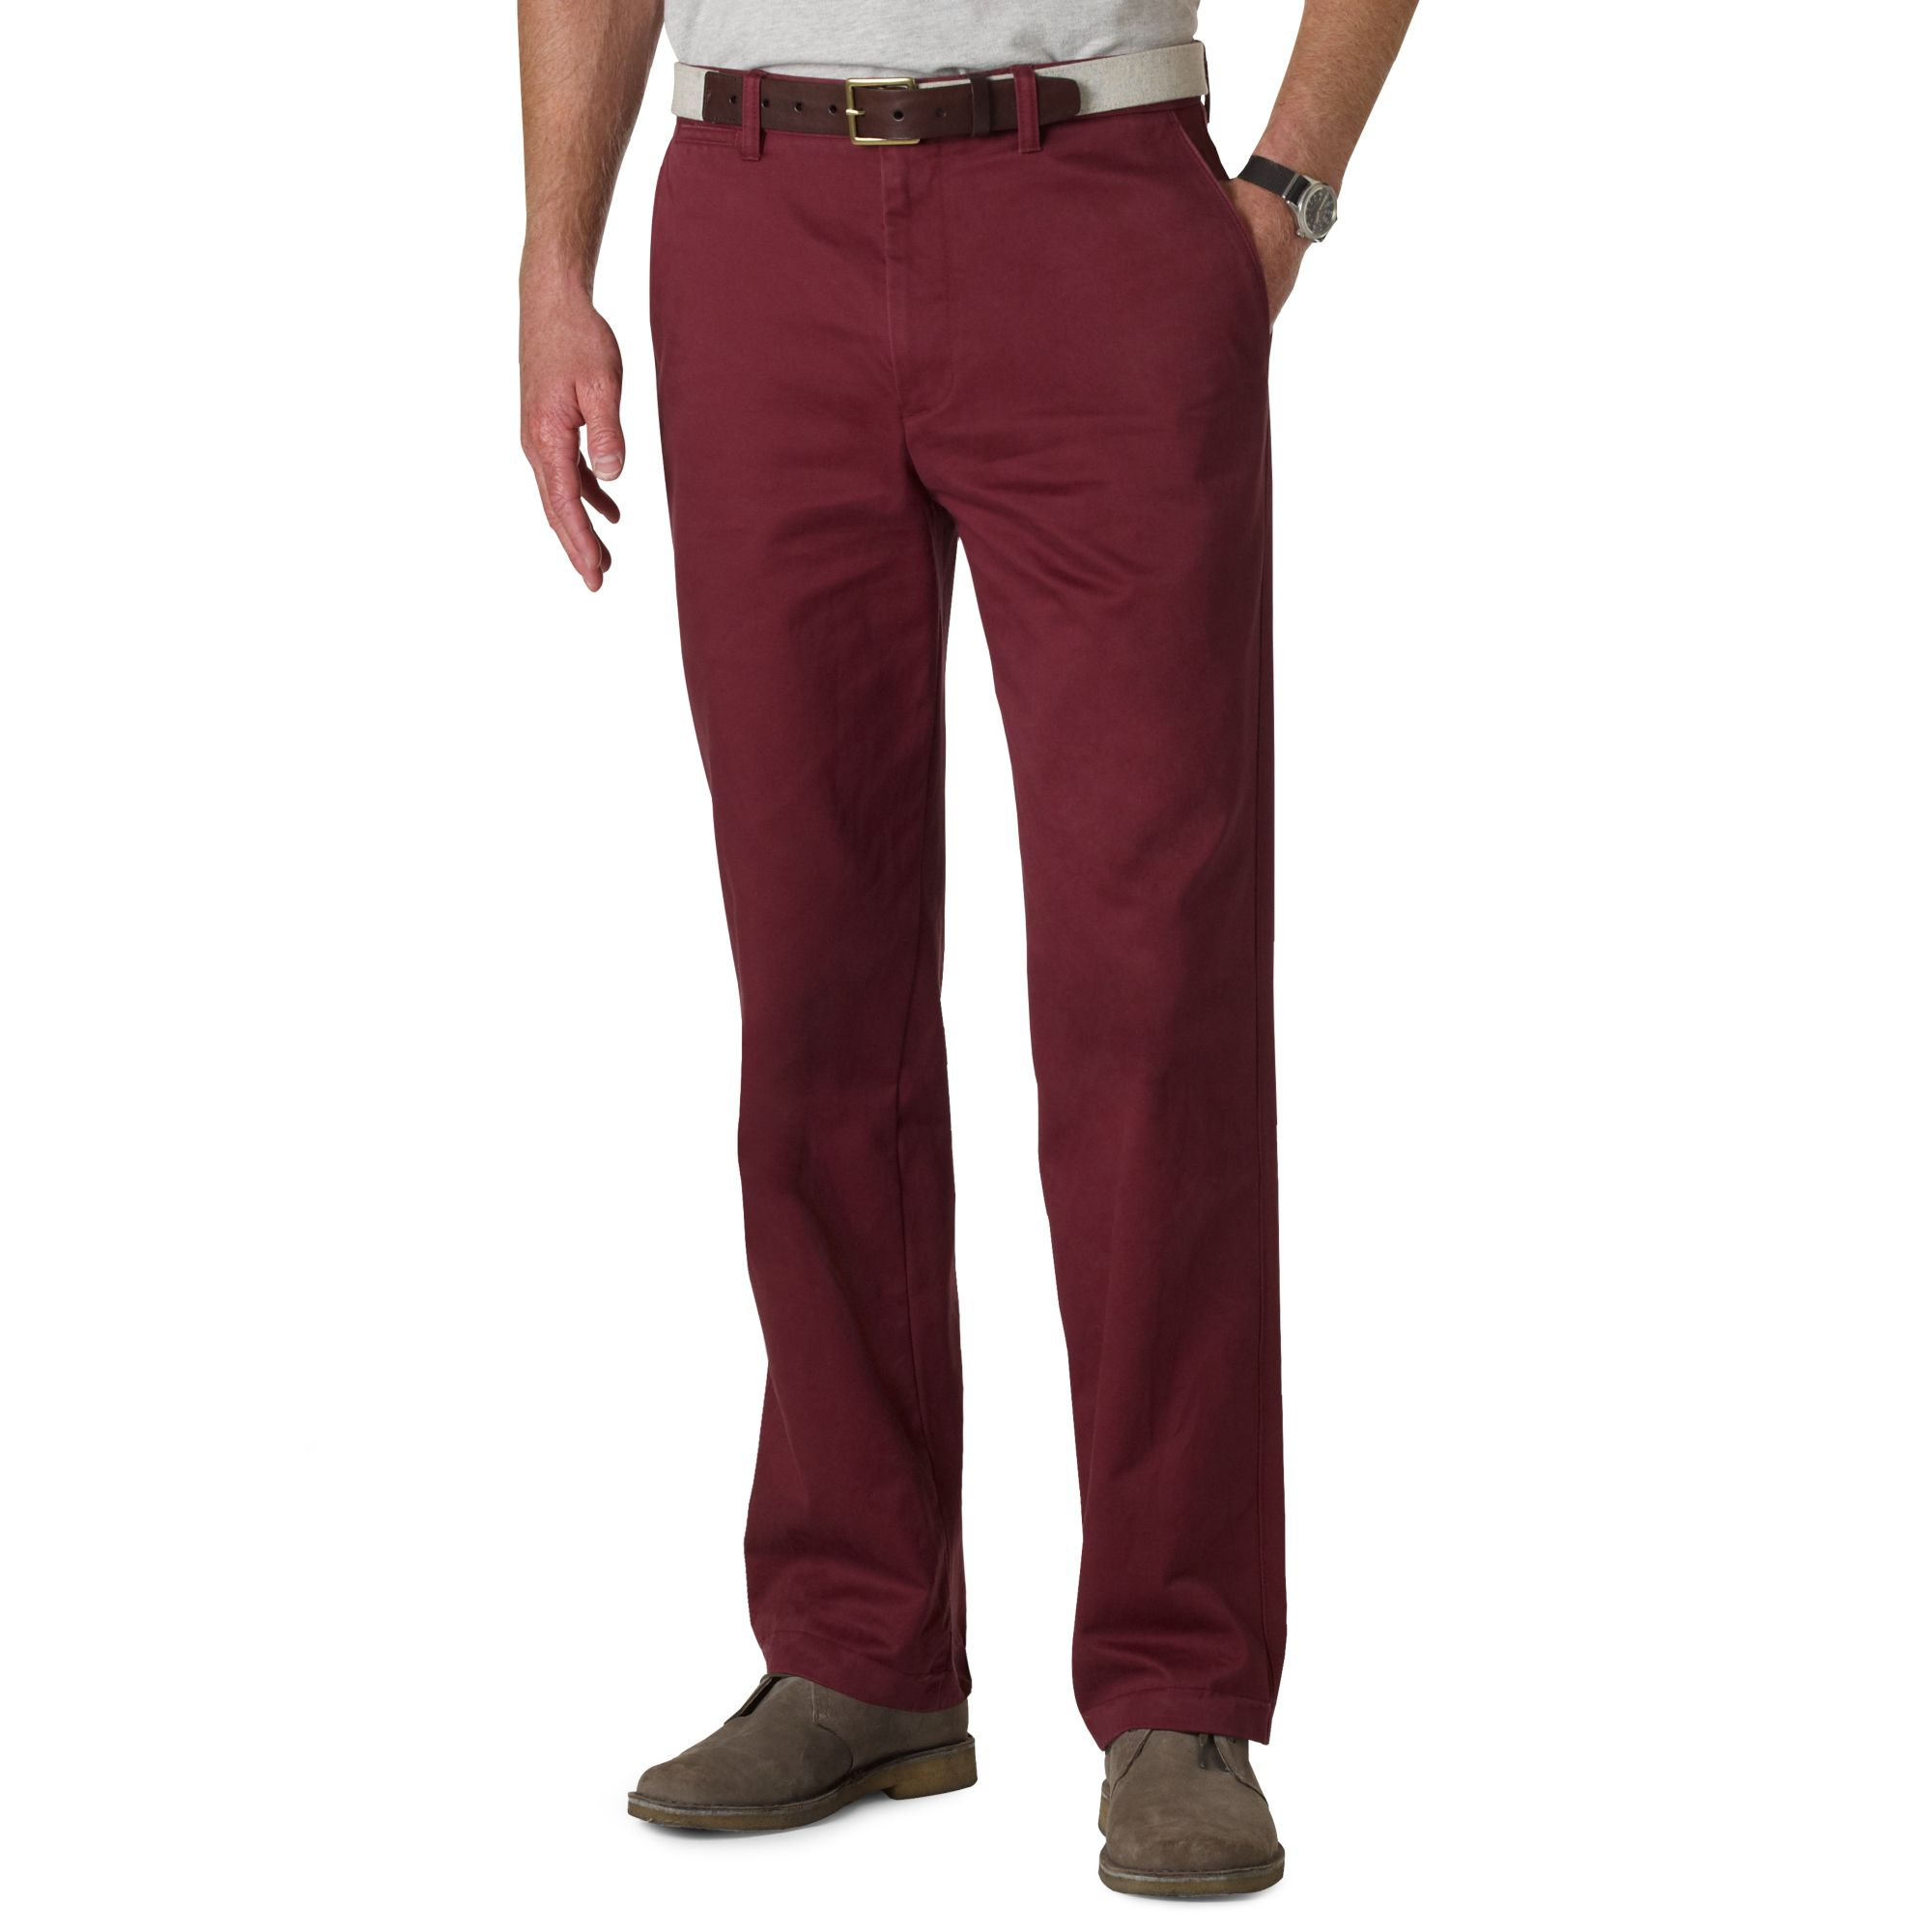 Maroon Shirts For Men